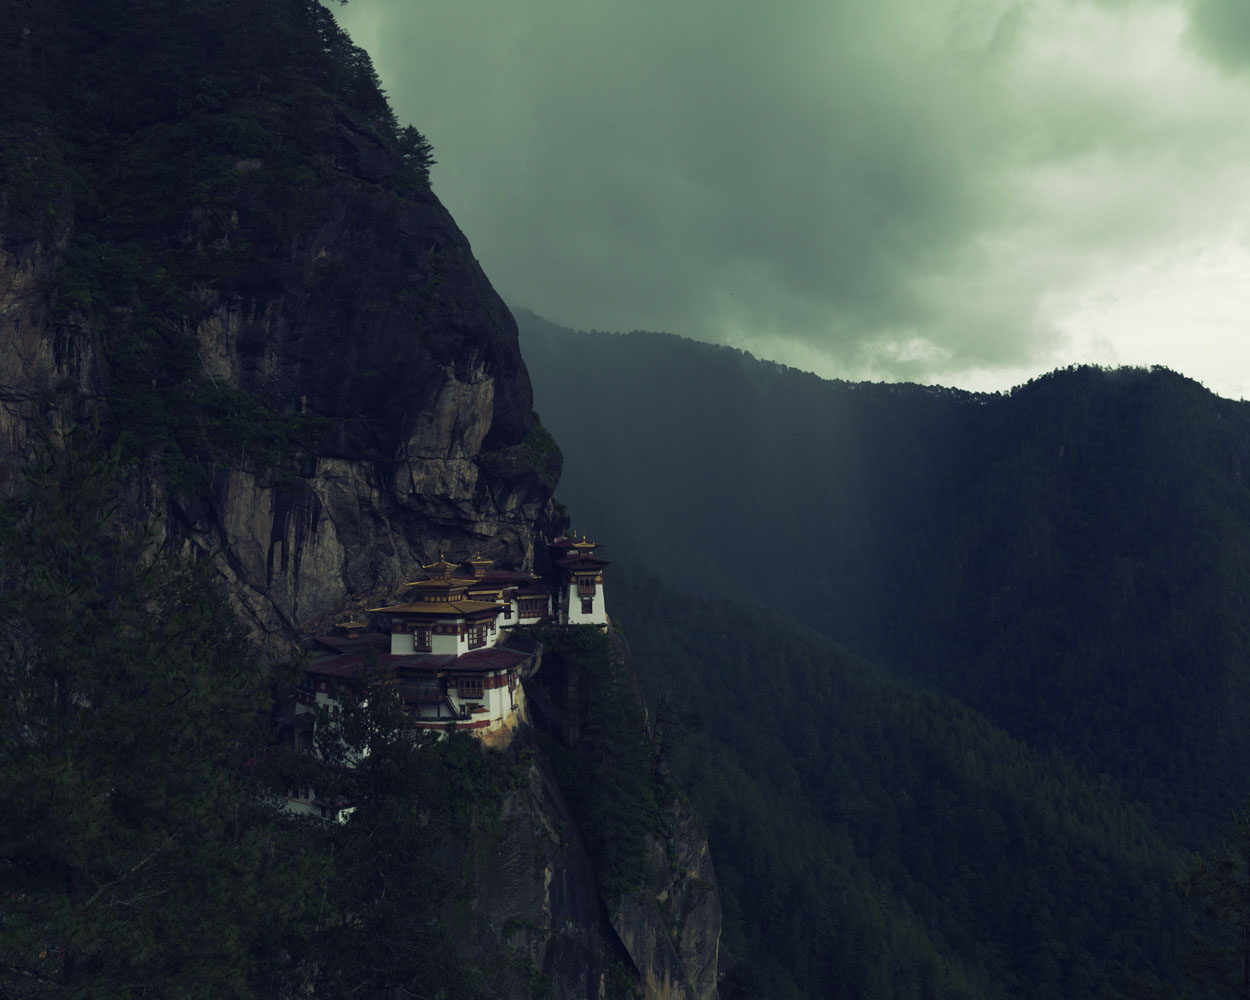 All photographs taken in Bhutan in July, 2012                               Paro Taktsang, known as the Tiger's Nest, is an ancient Buddhist temple perched 10,200 ft. above Bhutan's Paro Valley.